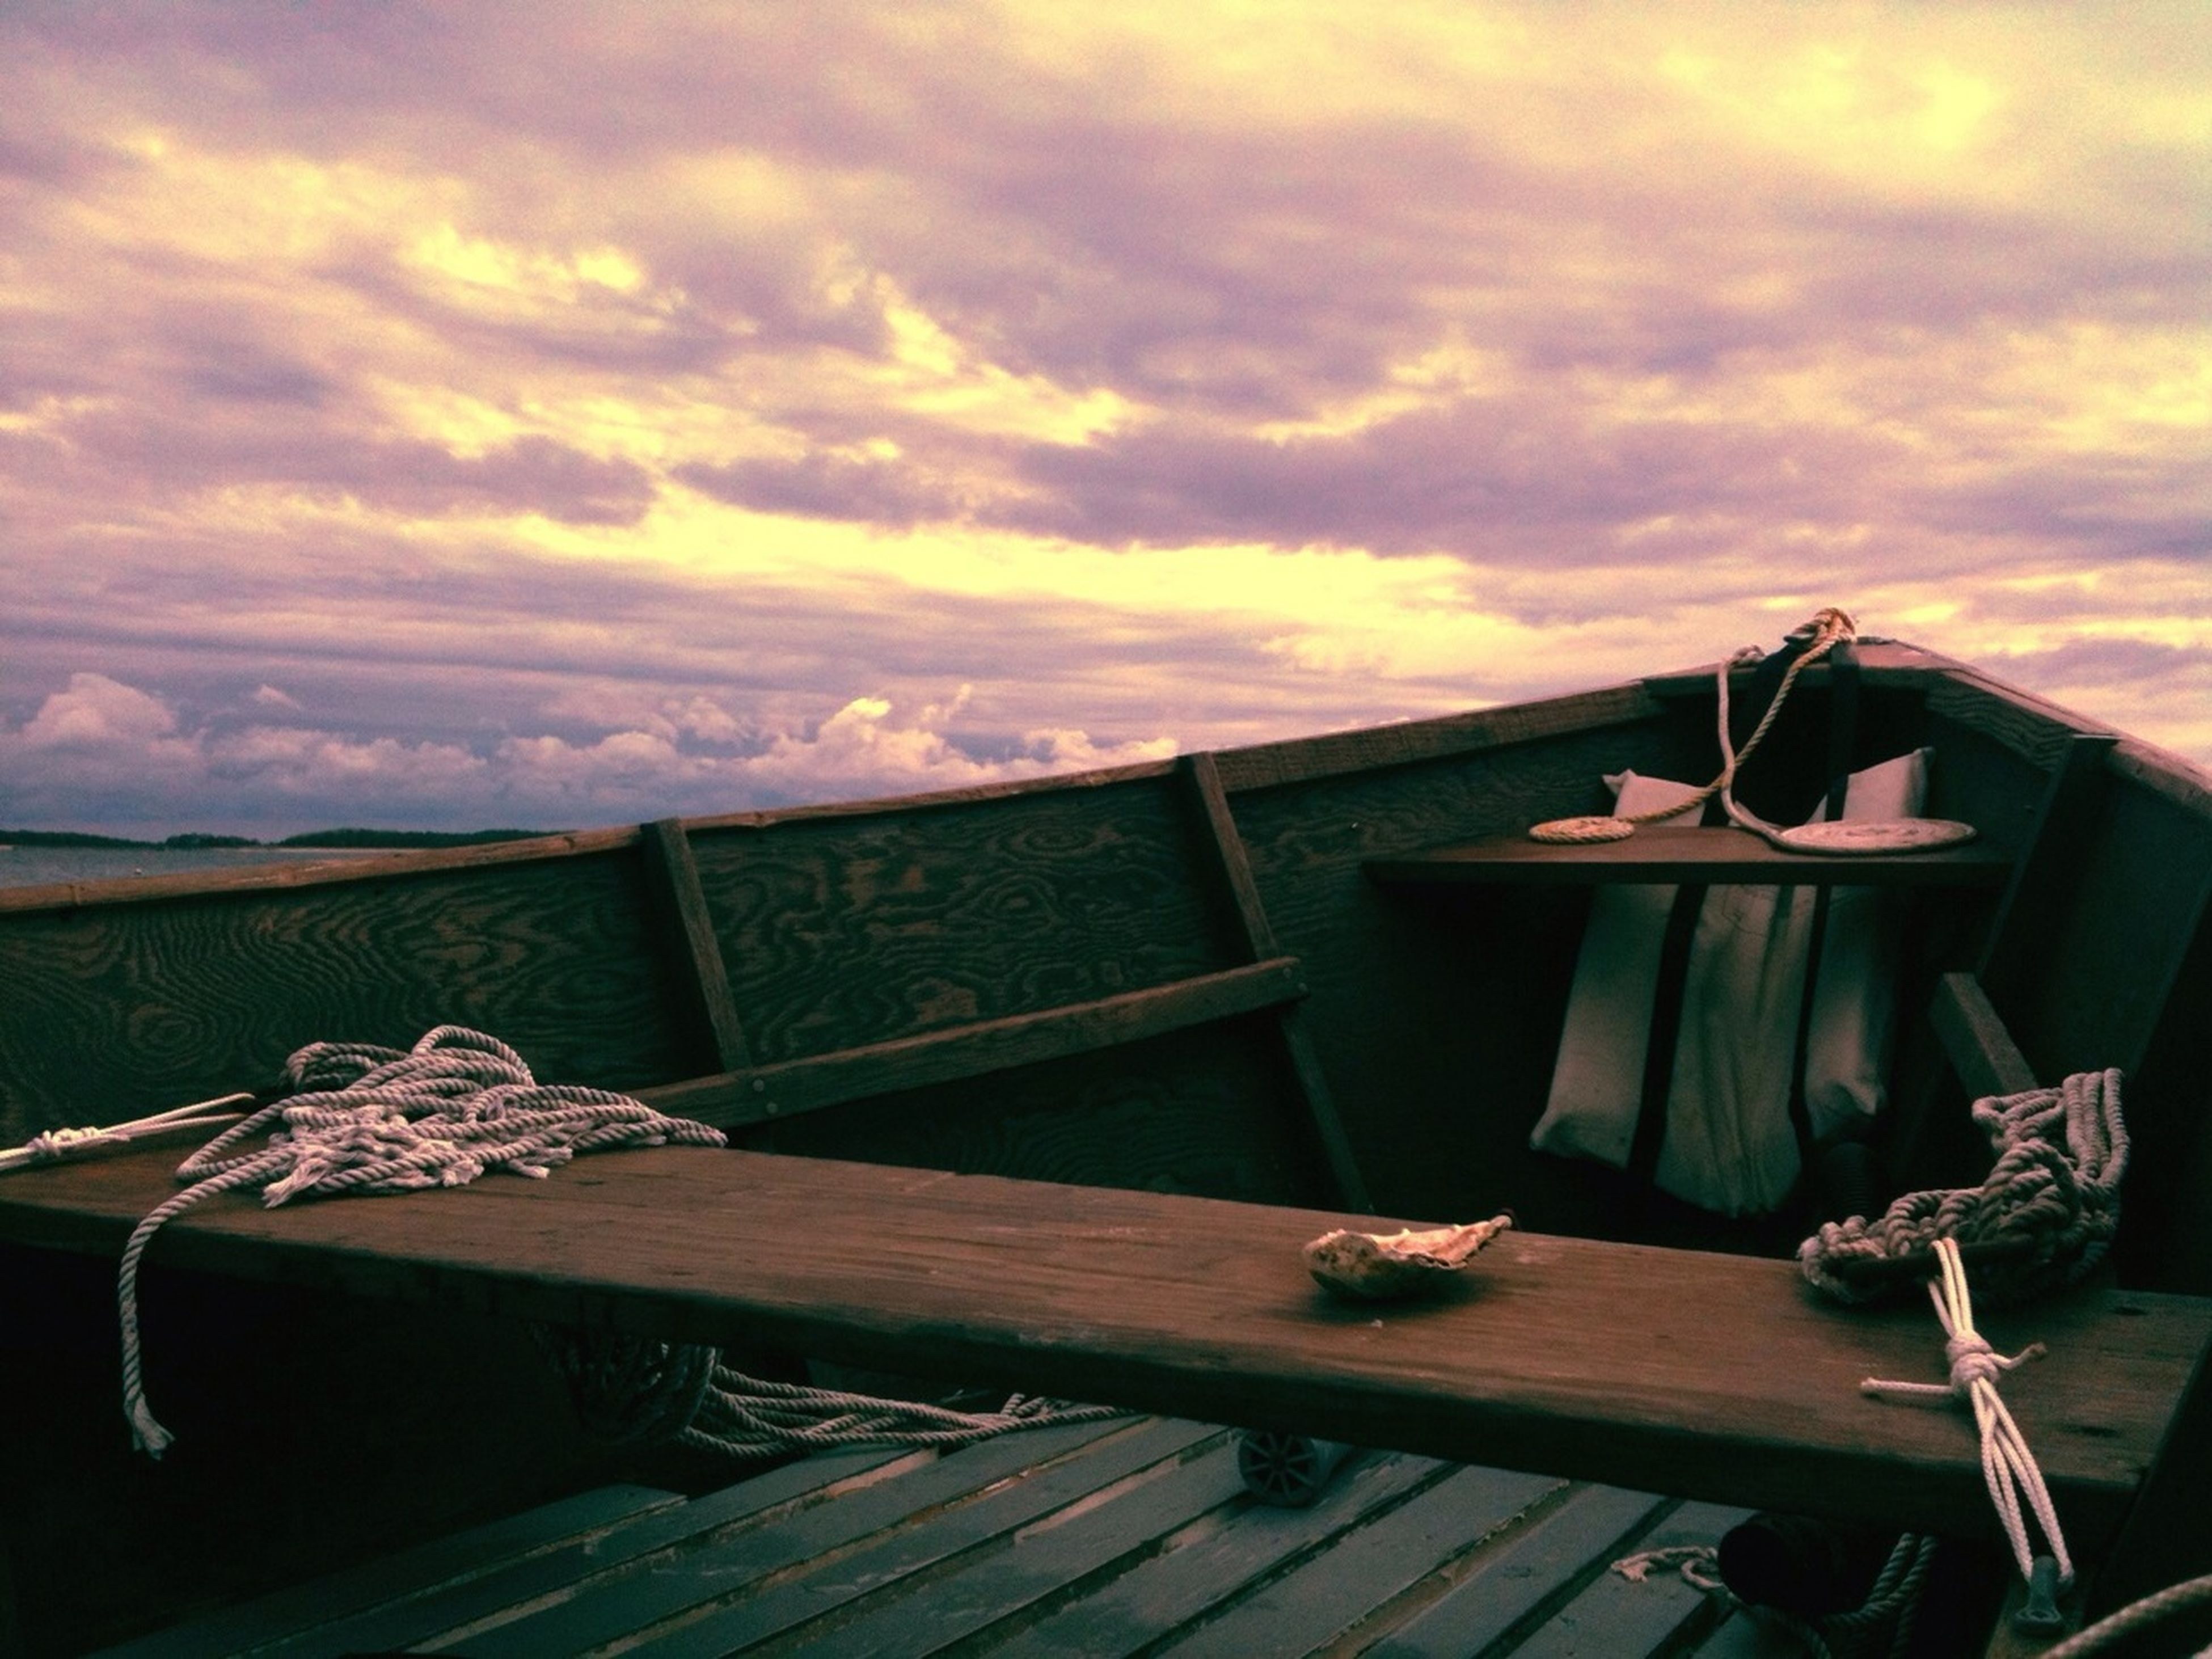 sky, wood - material, cloud - sky, sunset, cloudy, bench, wood, house, abandoned, tranquility, nature, outdoors, built structure, no people, wooden, cloud, absence, chair, tranquil scene, empty